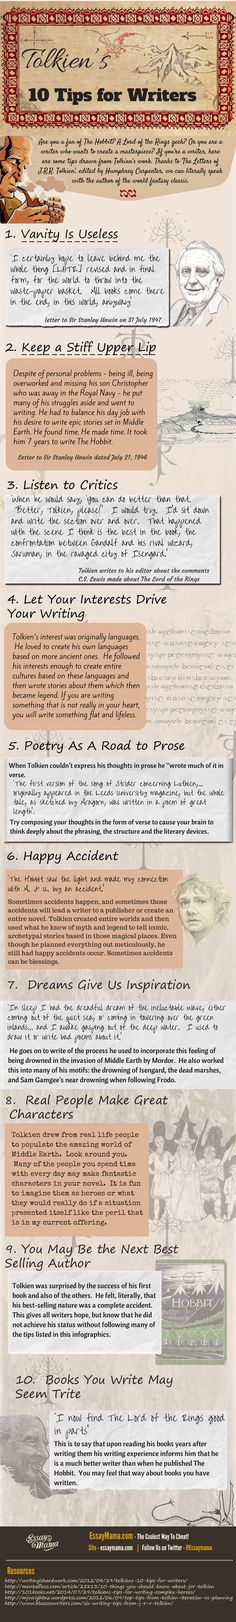 Tolkien's Ten Tips for Writers (There's some extrapolation in here, but it's still nice.)